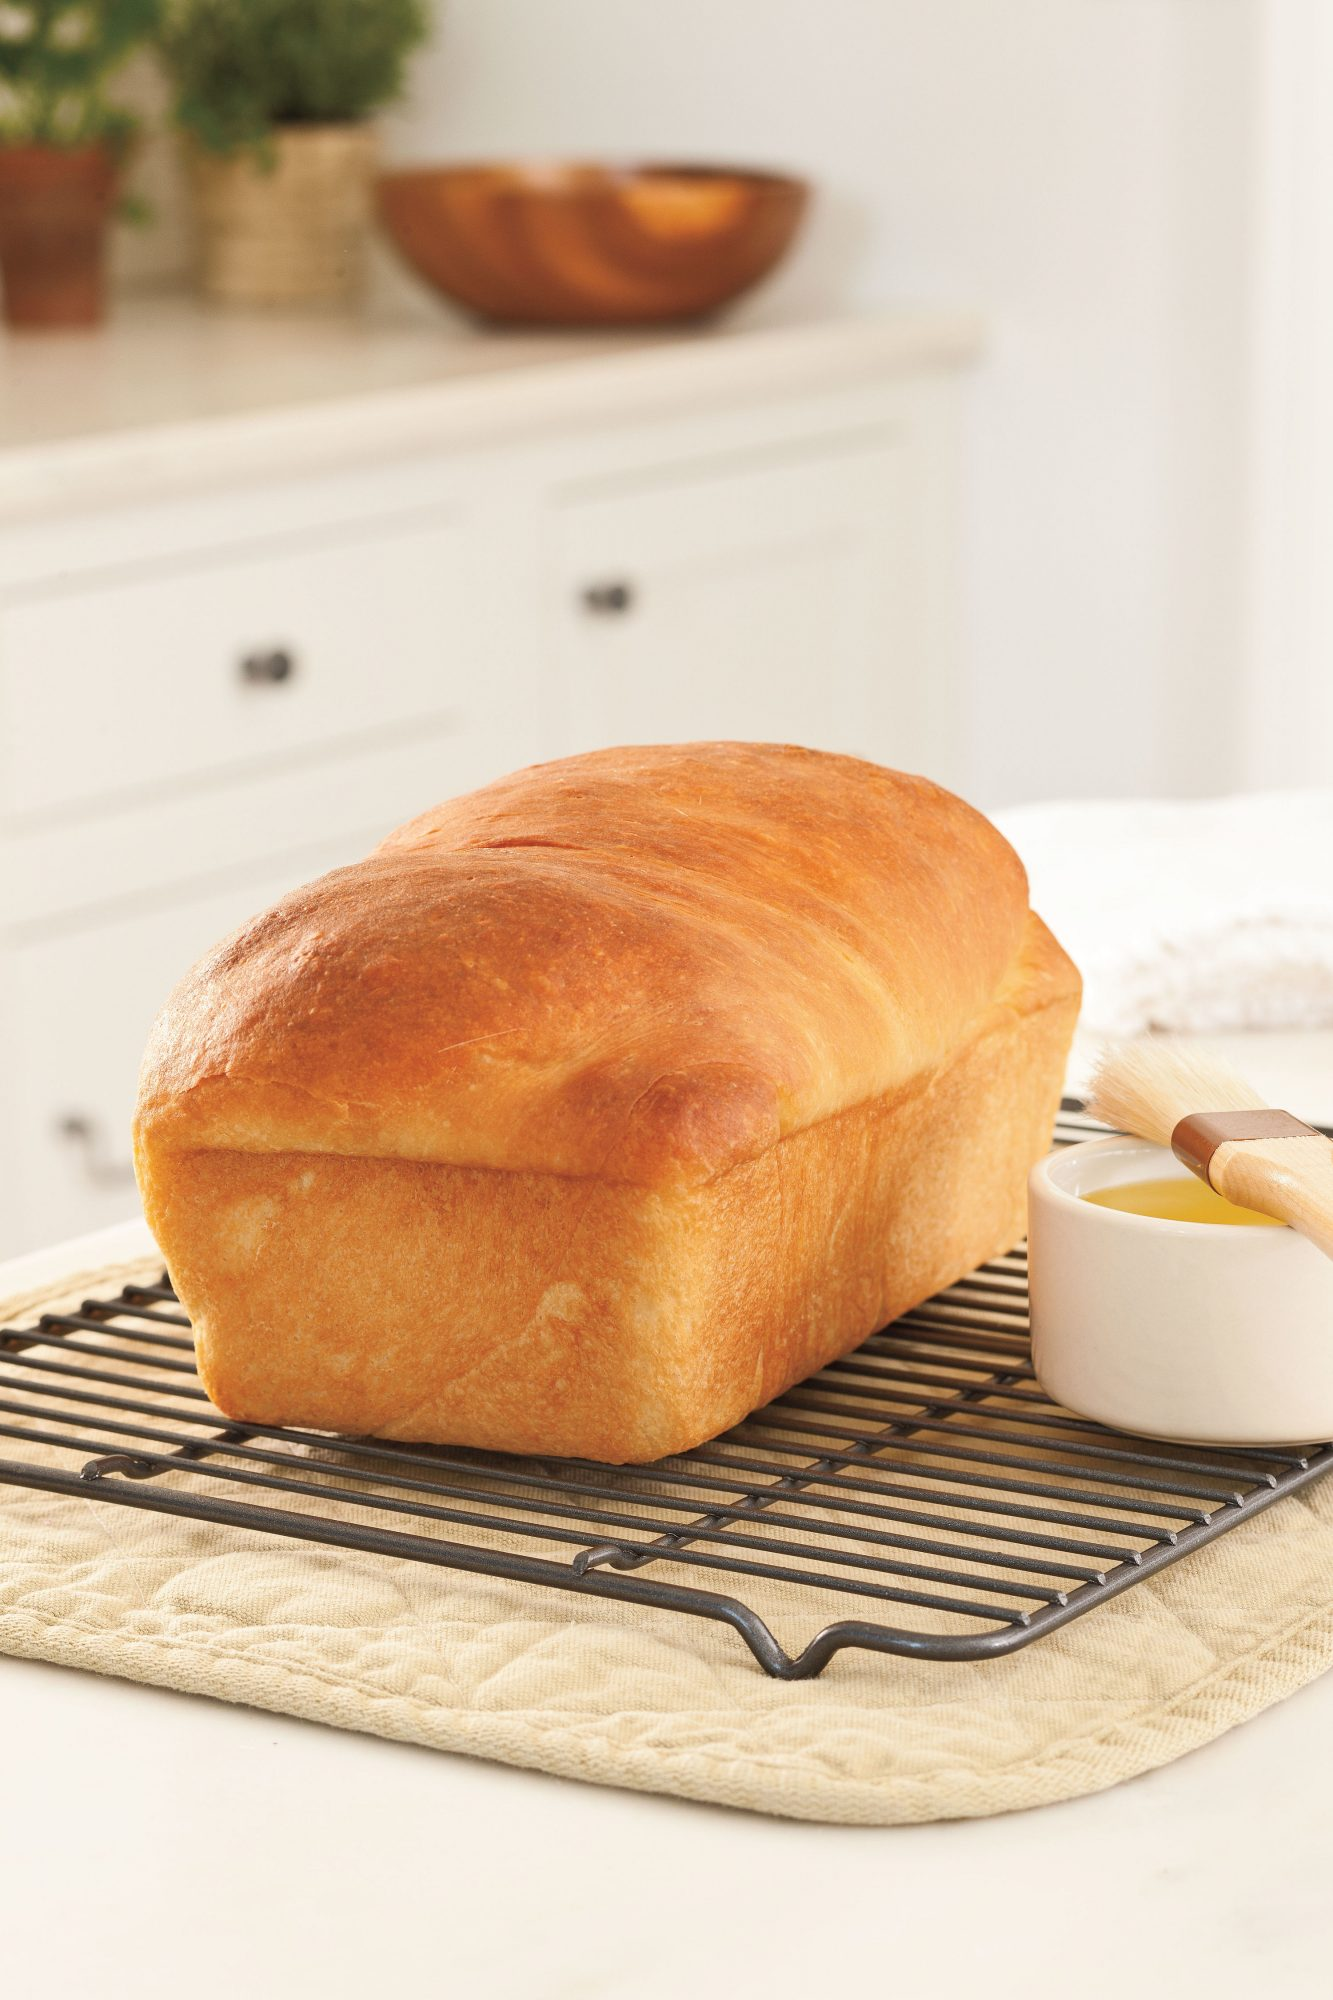 Muffins and Bread Recipes: Pam's Country Crust Bread